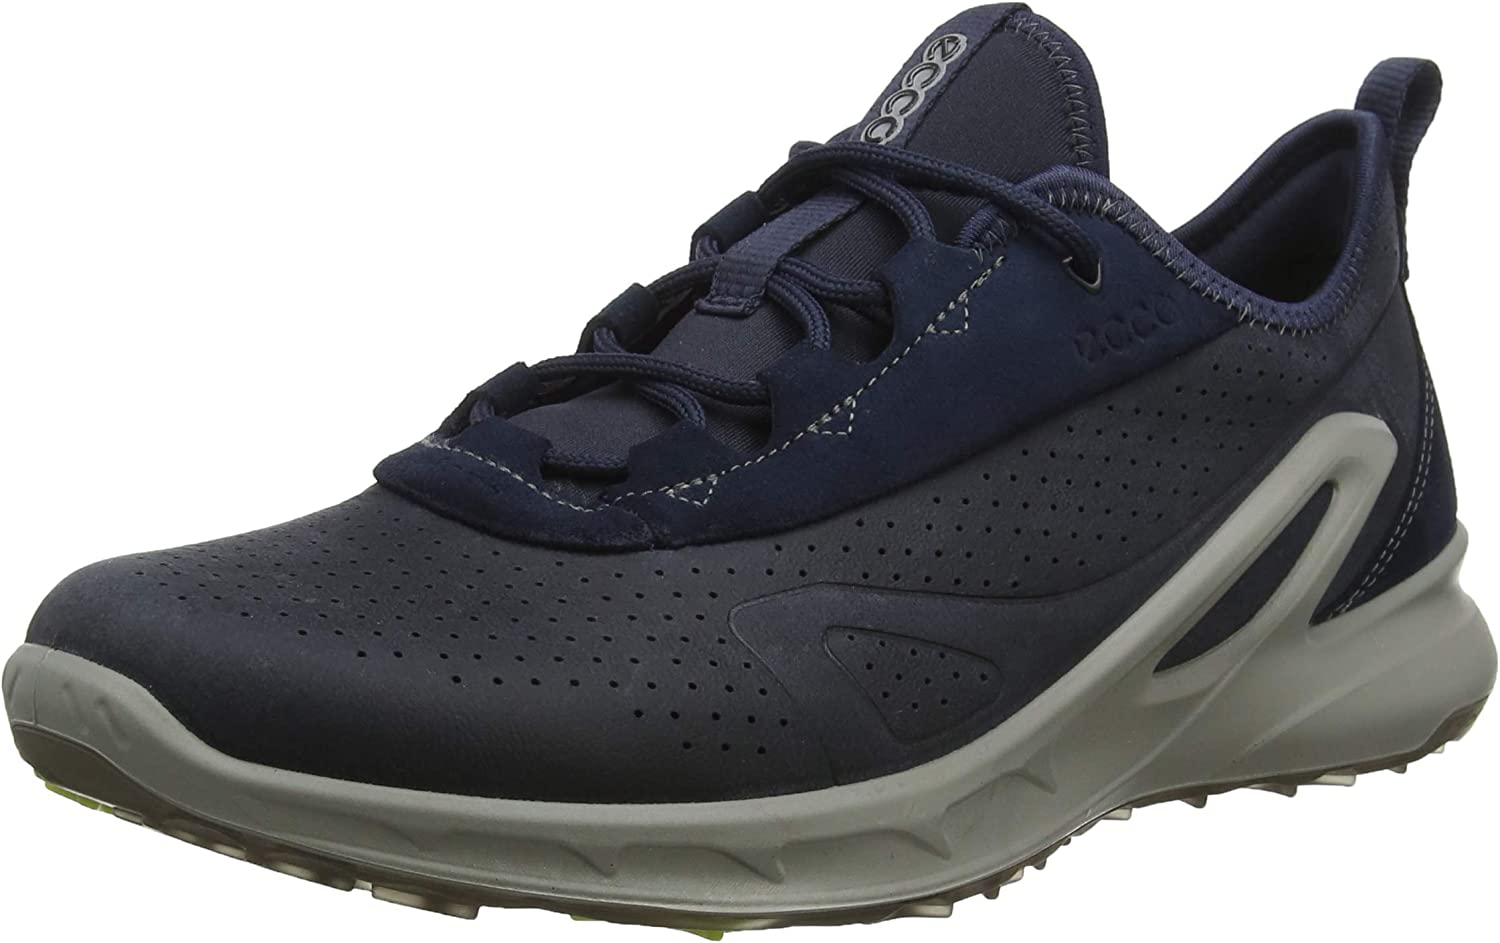 ECCO Men's's Biom Omniquest Fitness shoes